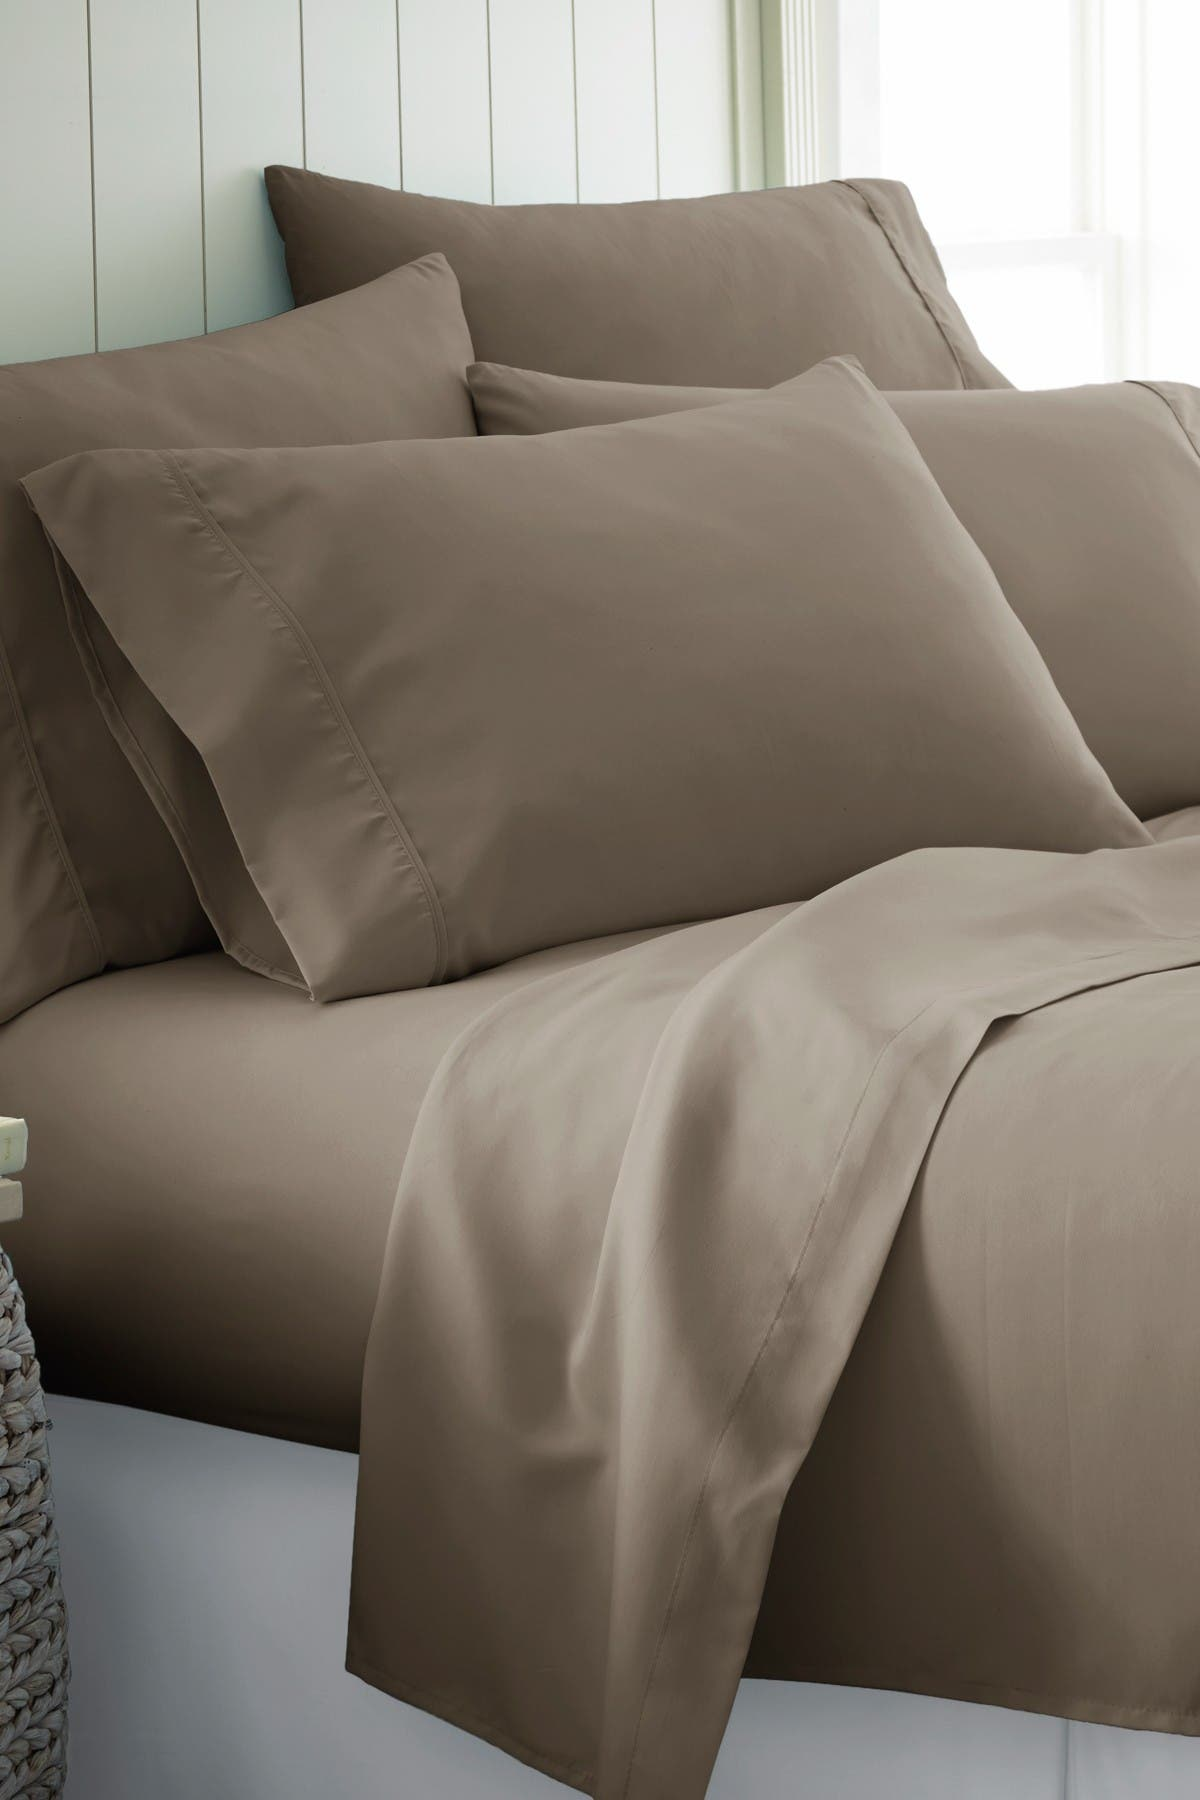 Image of IENJOY HOME Twin Hotel Collection Premium Ultra Soft 4-Piece Bed Sheet Set - Taupe